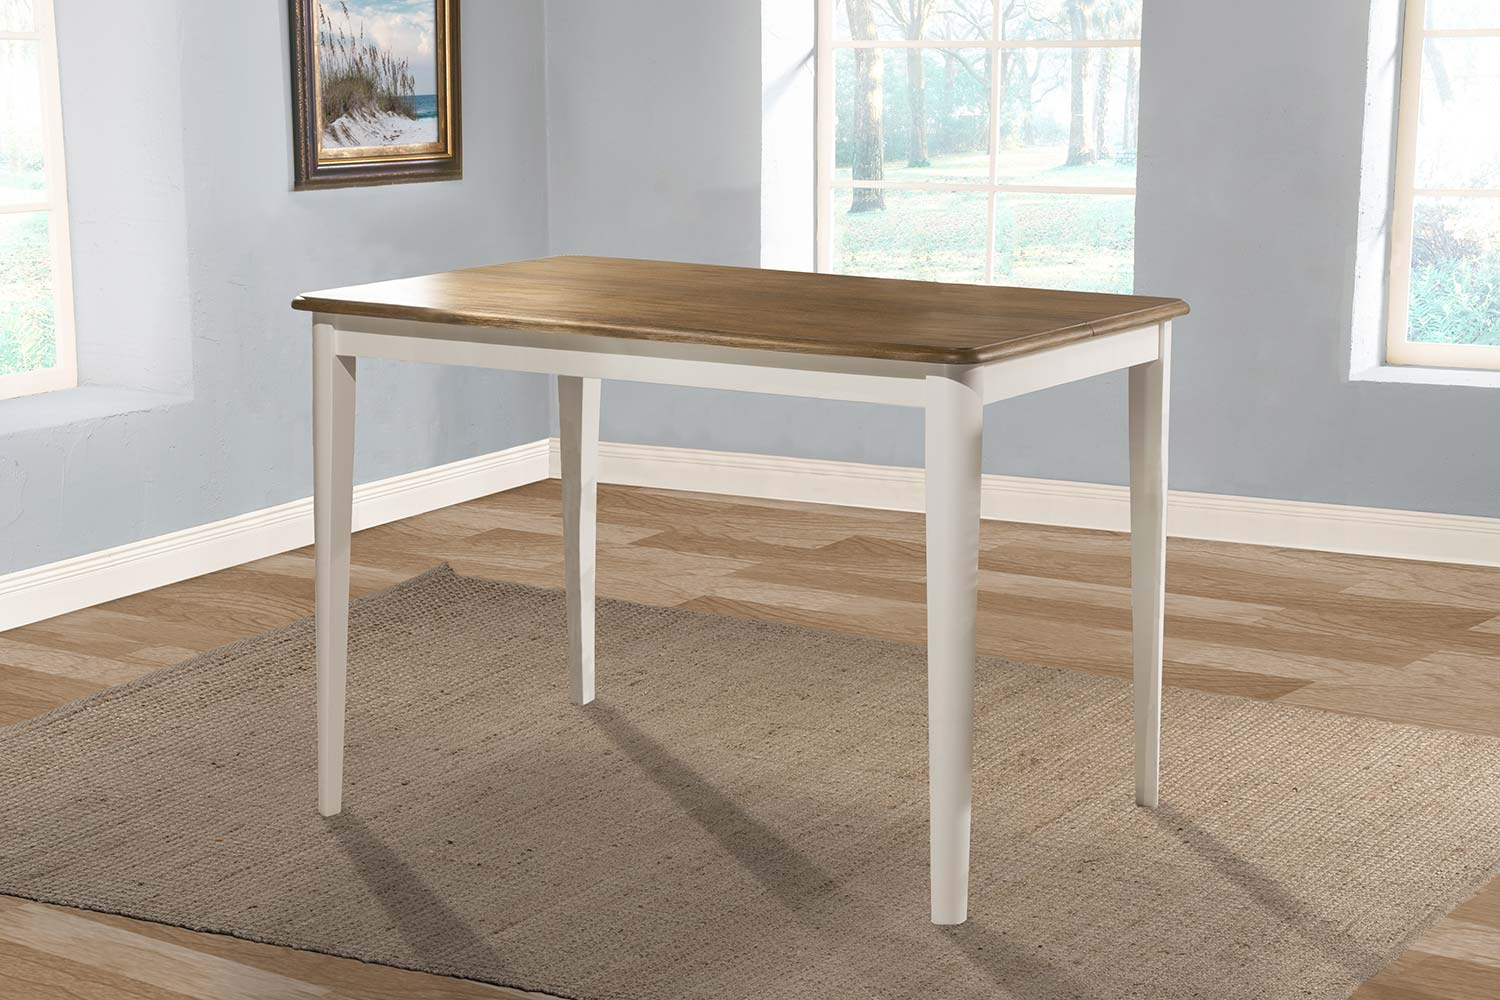 Hillsdale Bayberry Counter Height Extension Dining Table - White/Driftwood